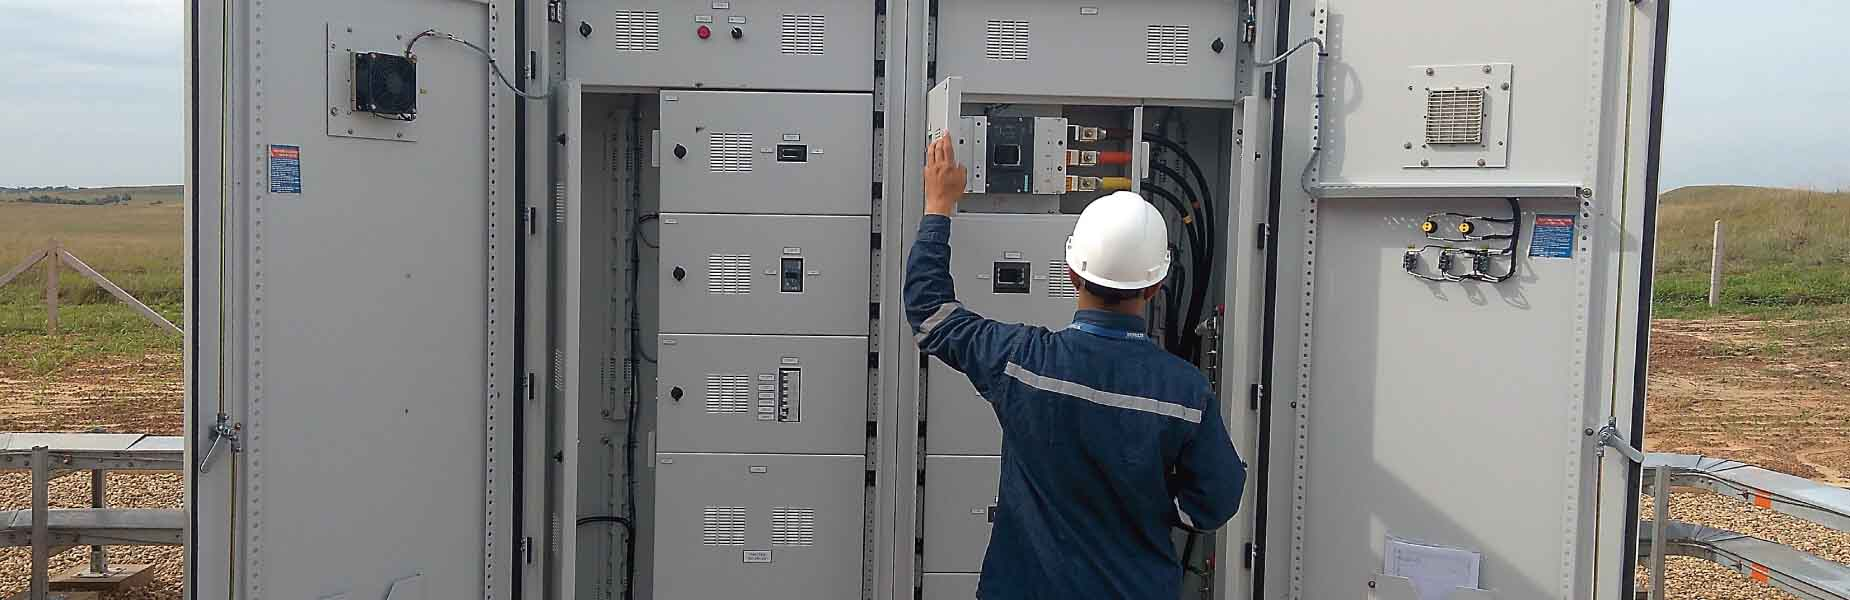 Commissioning of electrical equipment and substations